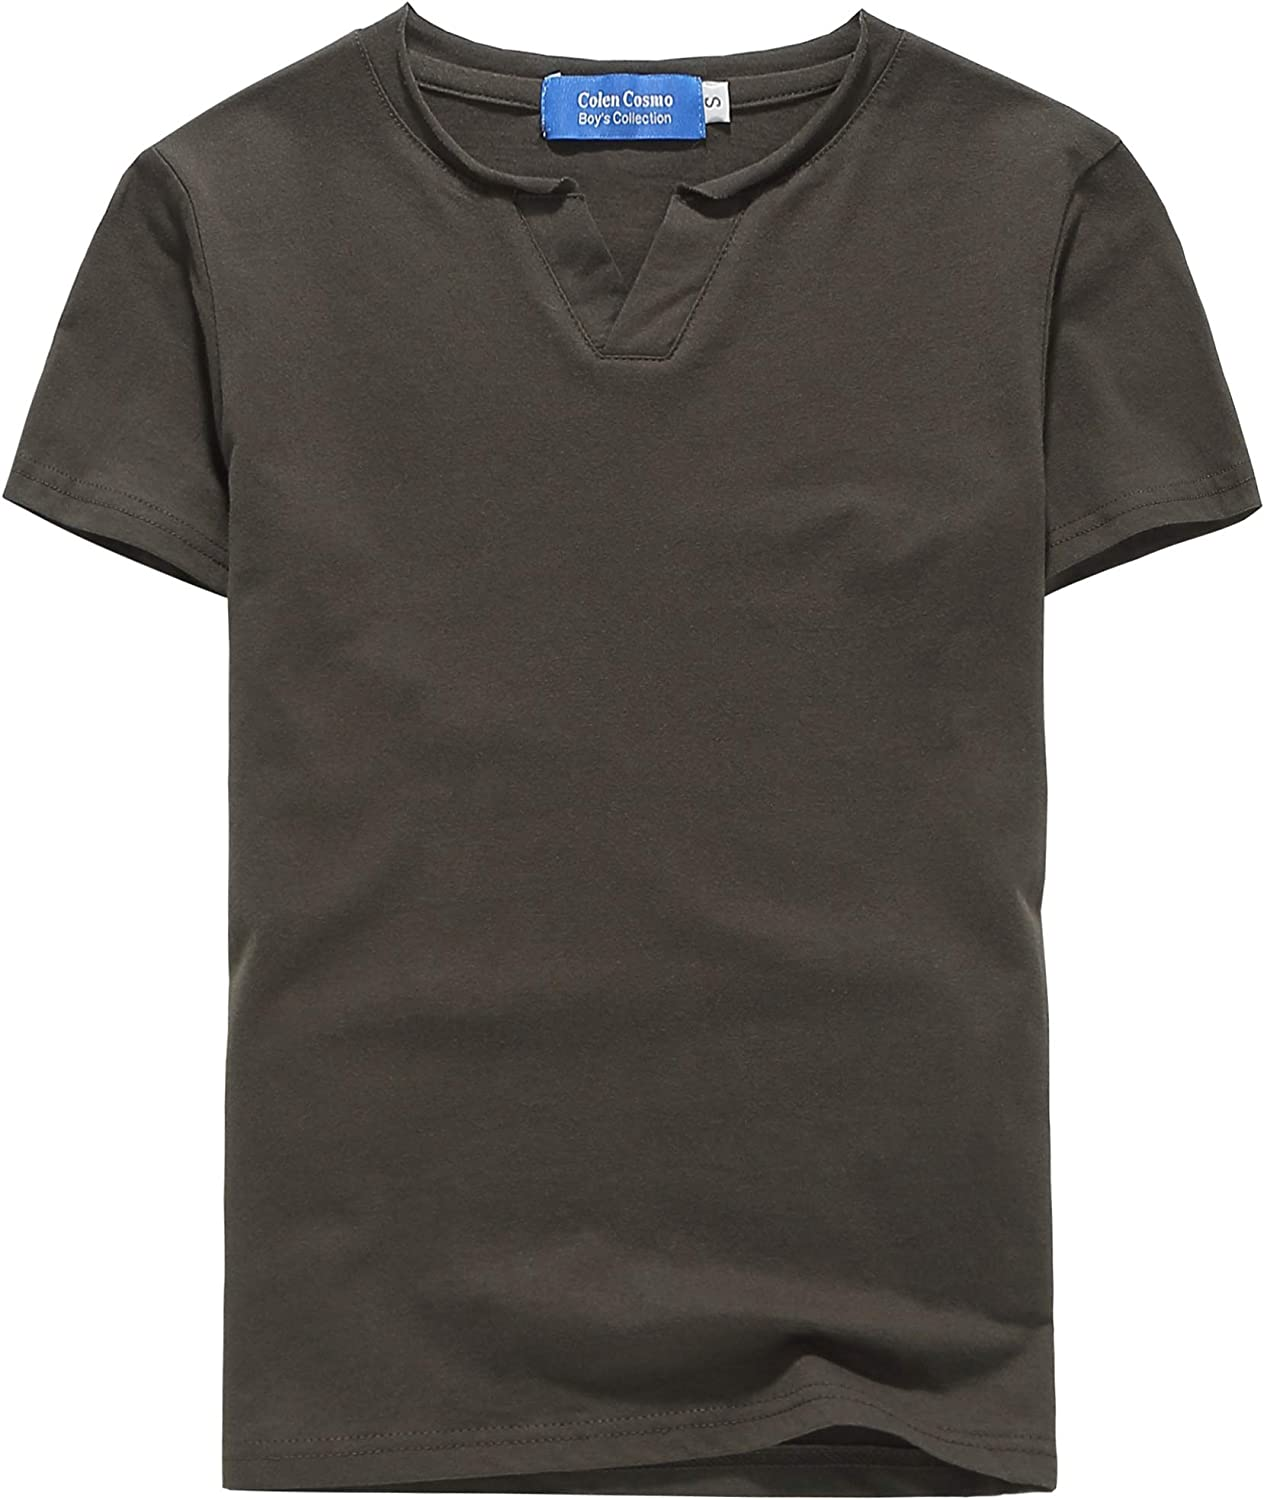 Colen Cosmo Big Boys Tshirts V Neck Tee Casual Cotton Short Sleeve T Shirts for Kids